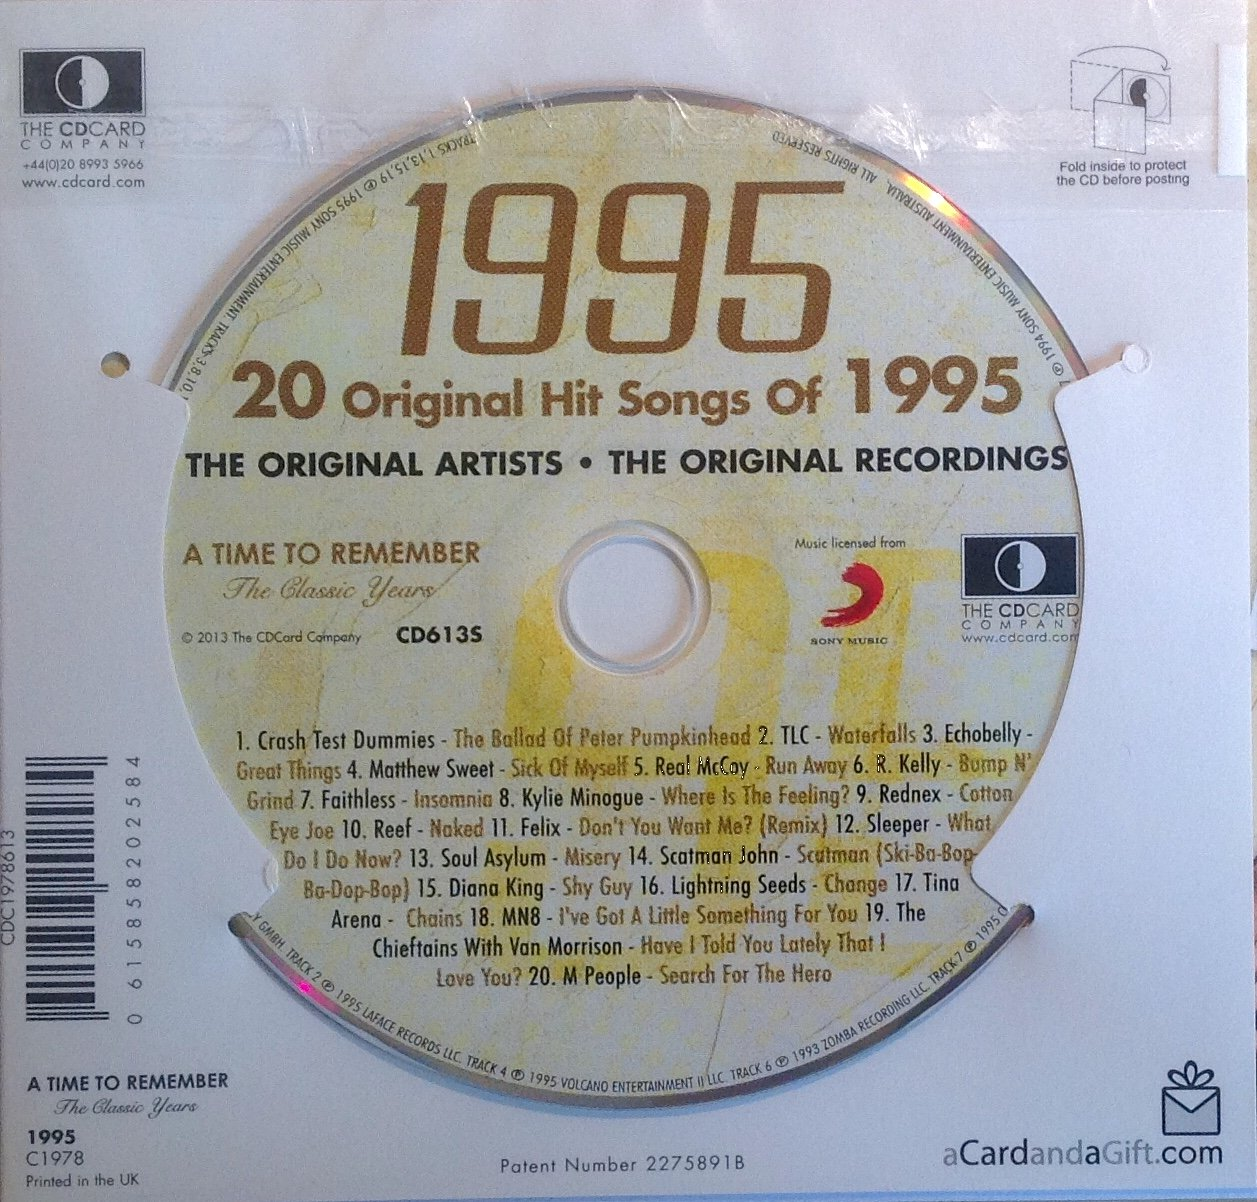 1995 Audio CD Compliation Hit Music of 1995 and Greeting Card in one; A Time to Remember The Classic Years